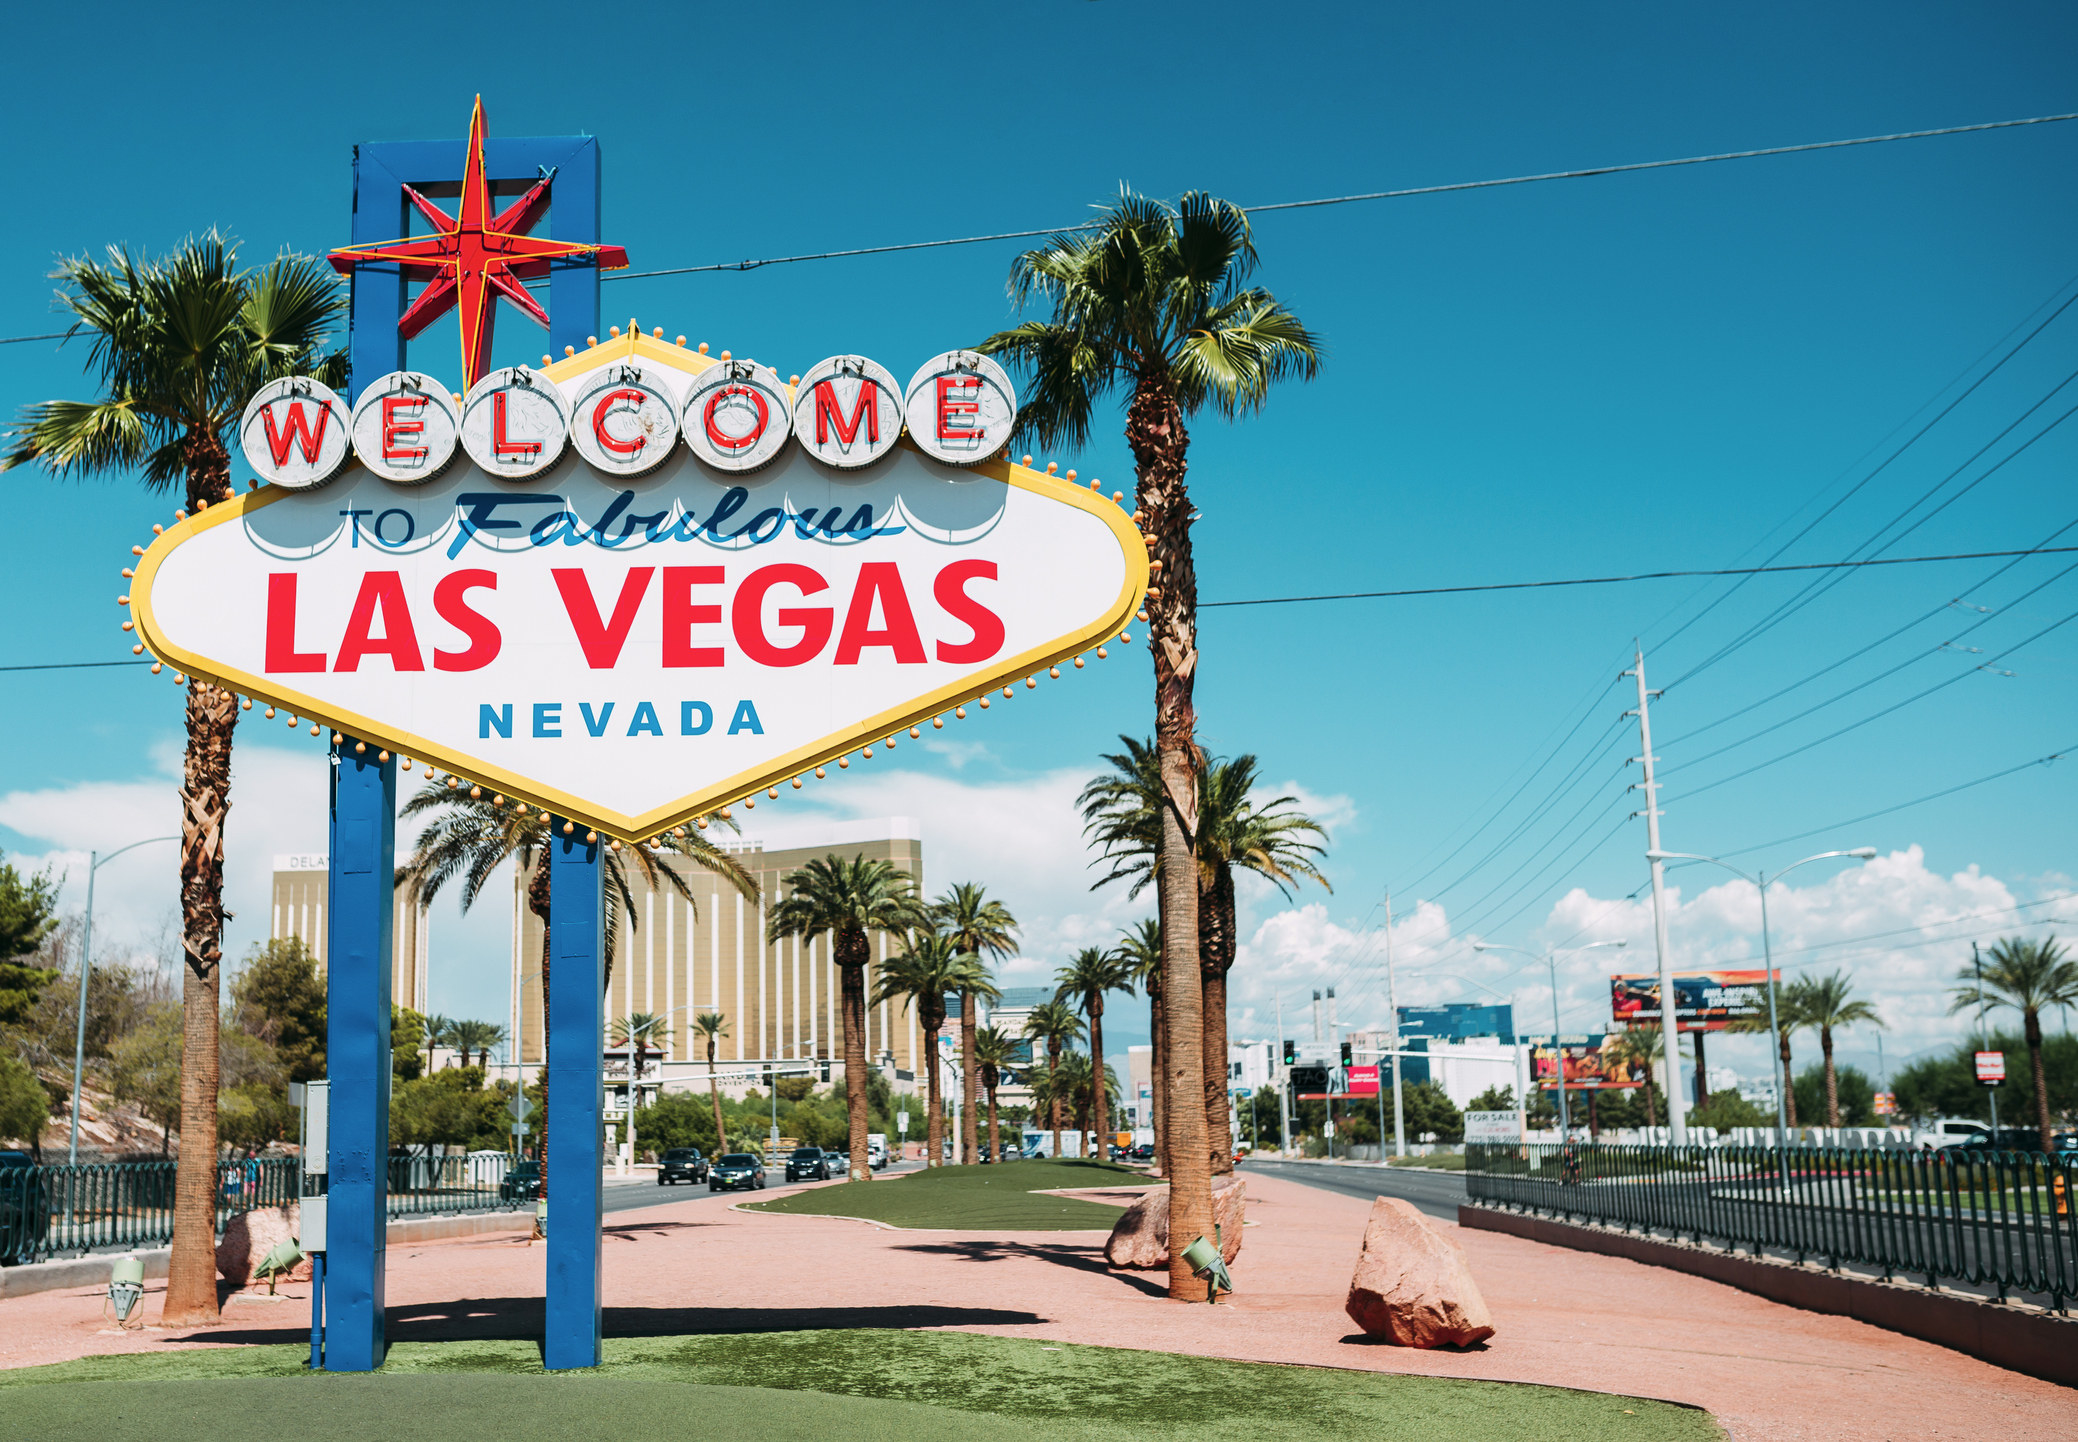 """The iconic """"welcome to fabulous las vegas"""" sign under a blue sky with a slightly grainy, old-timey filter"""